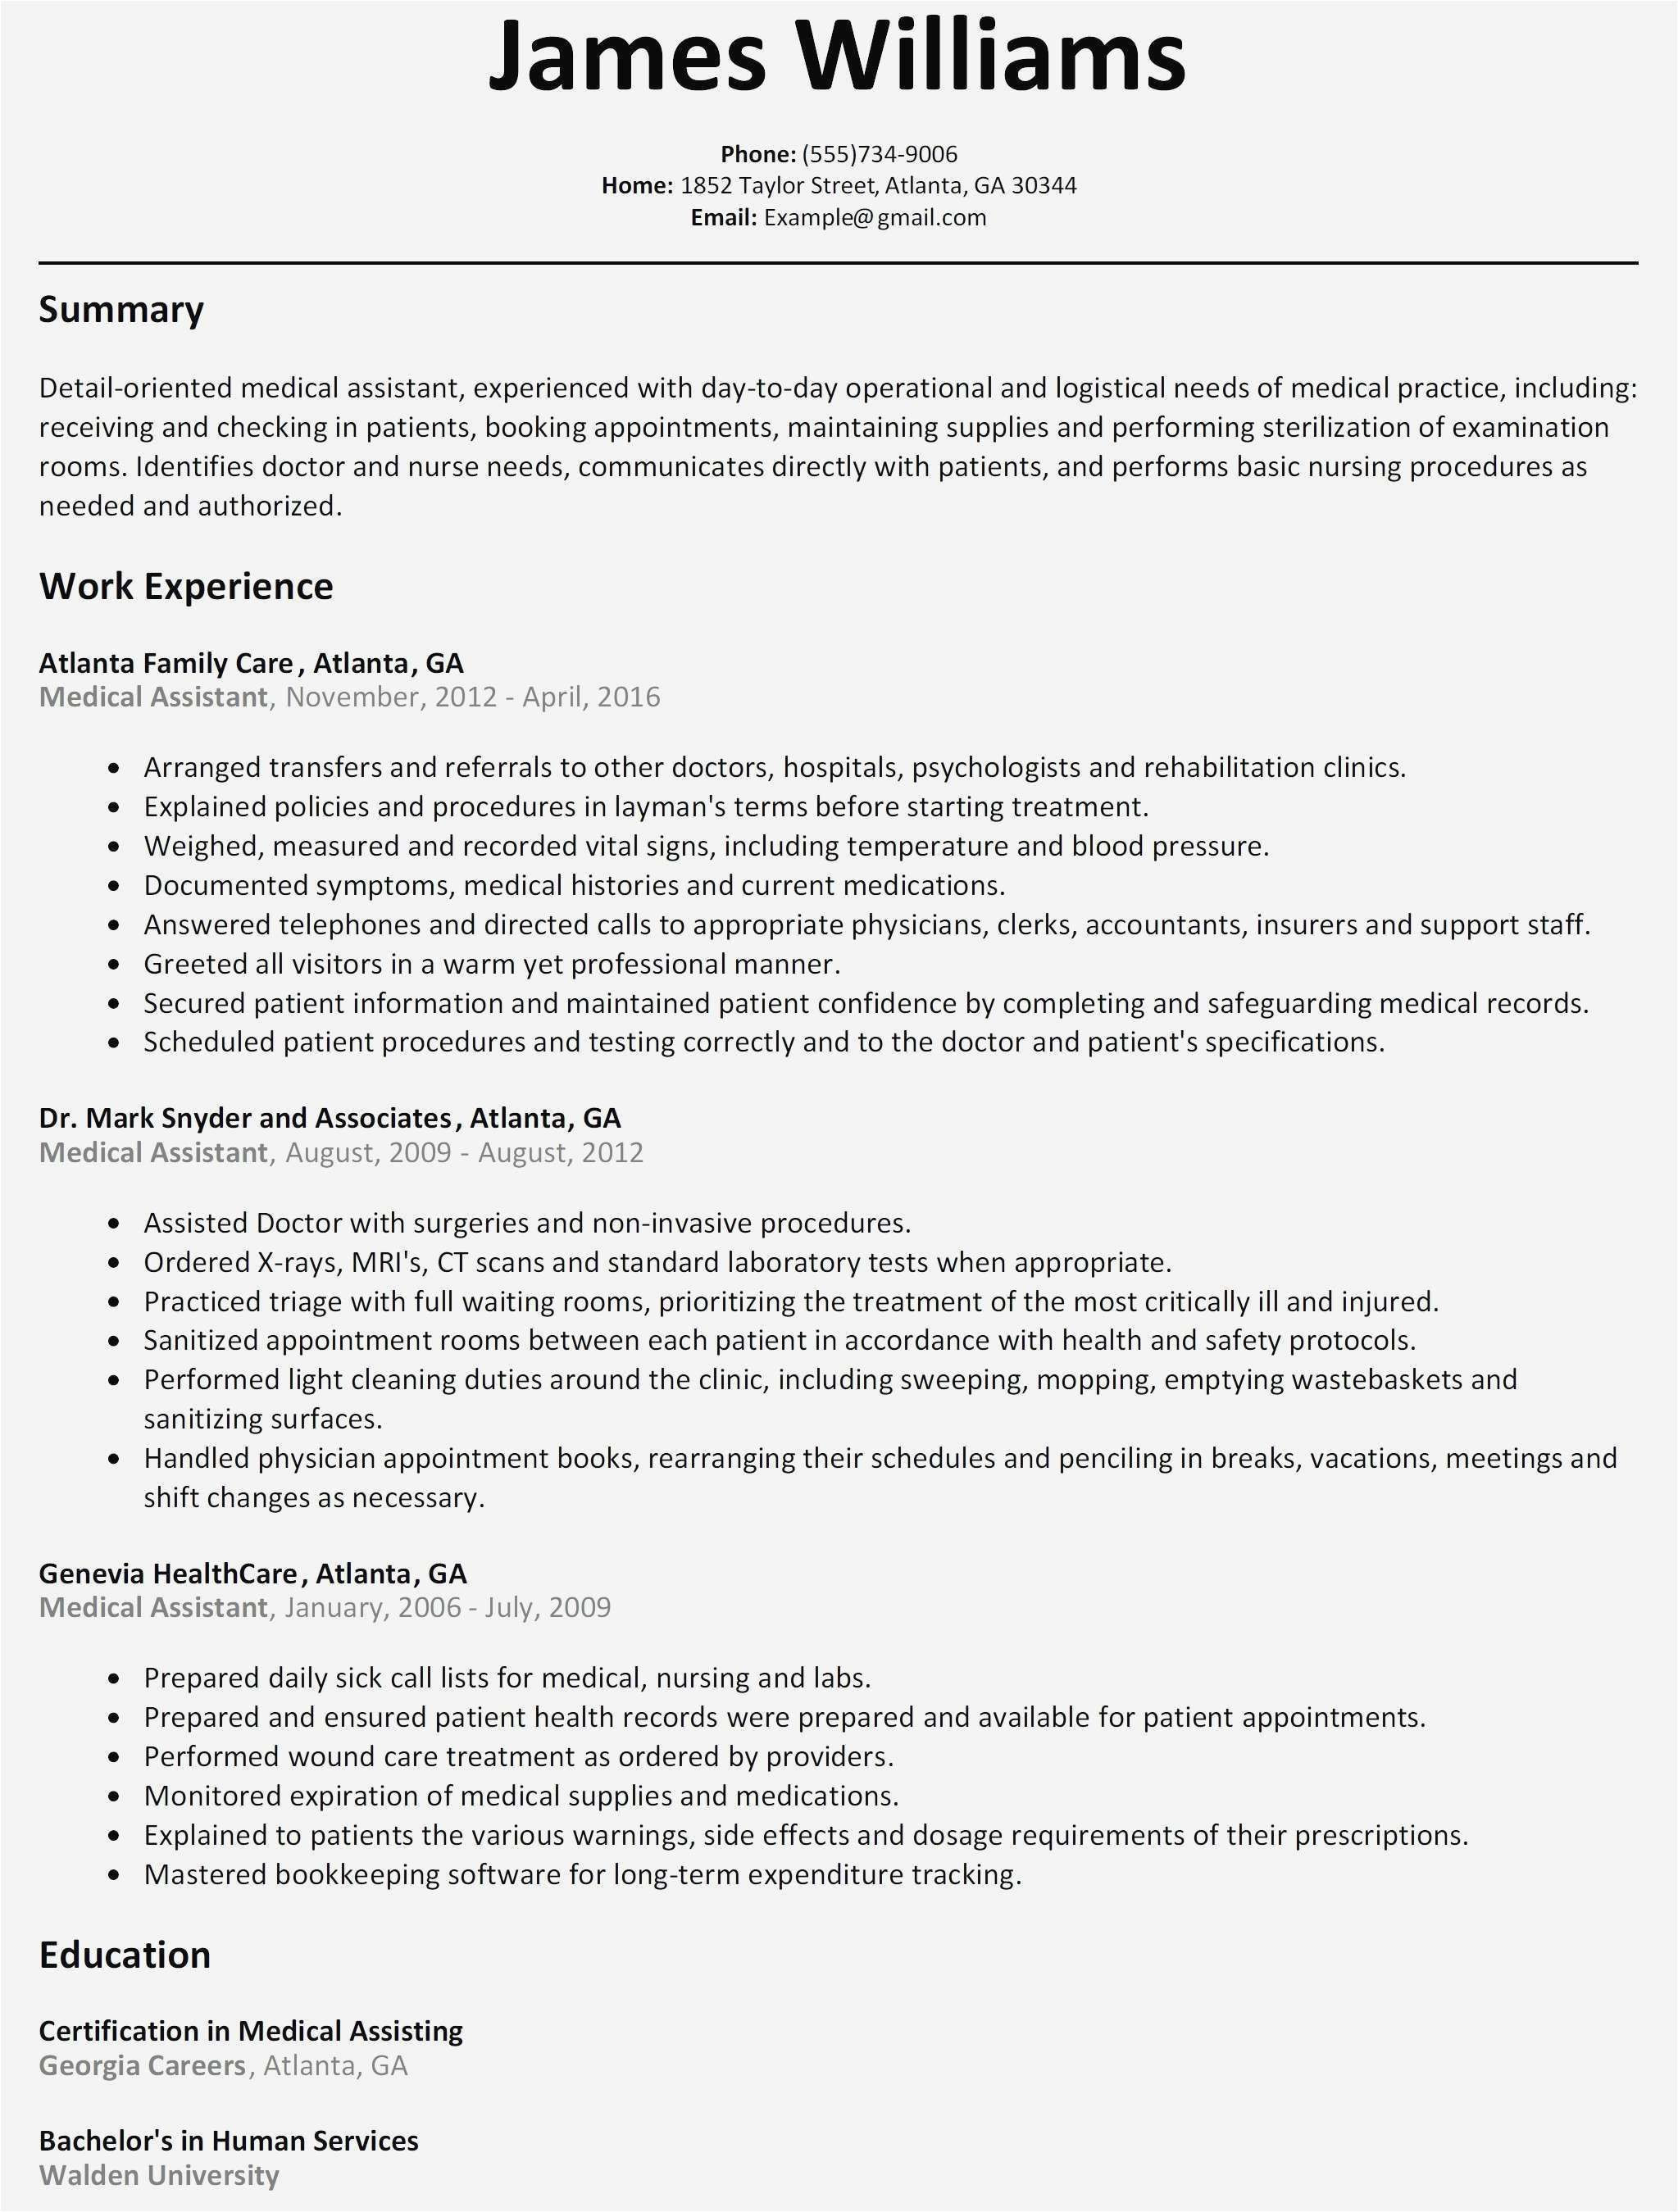 Resume Template Mac - Free Resume Template Mac